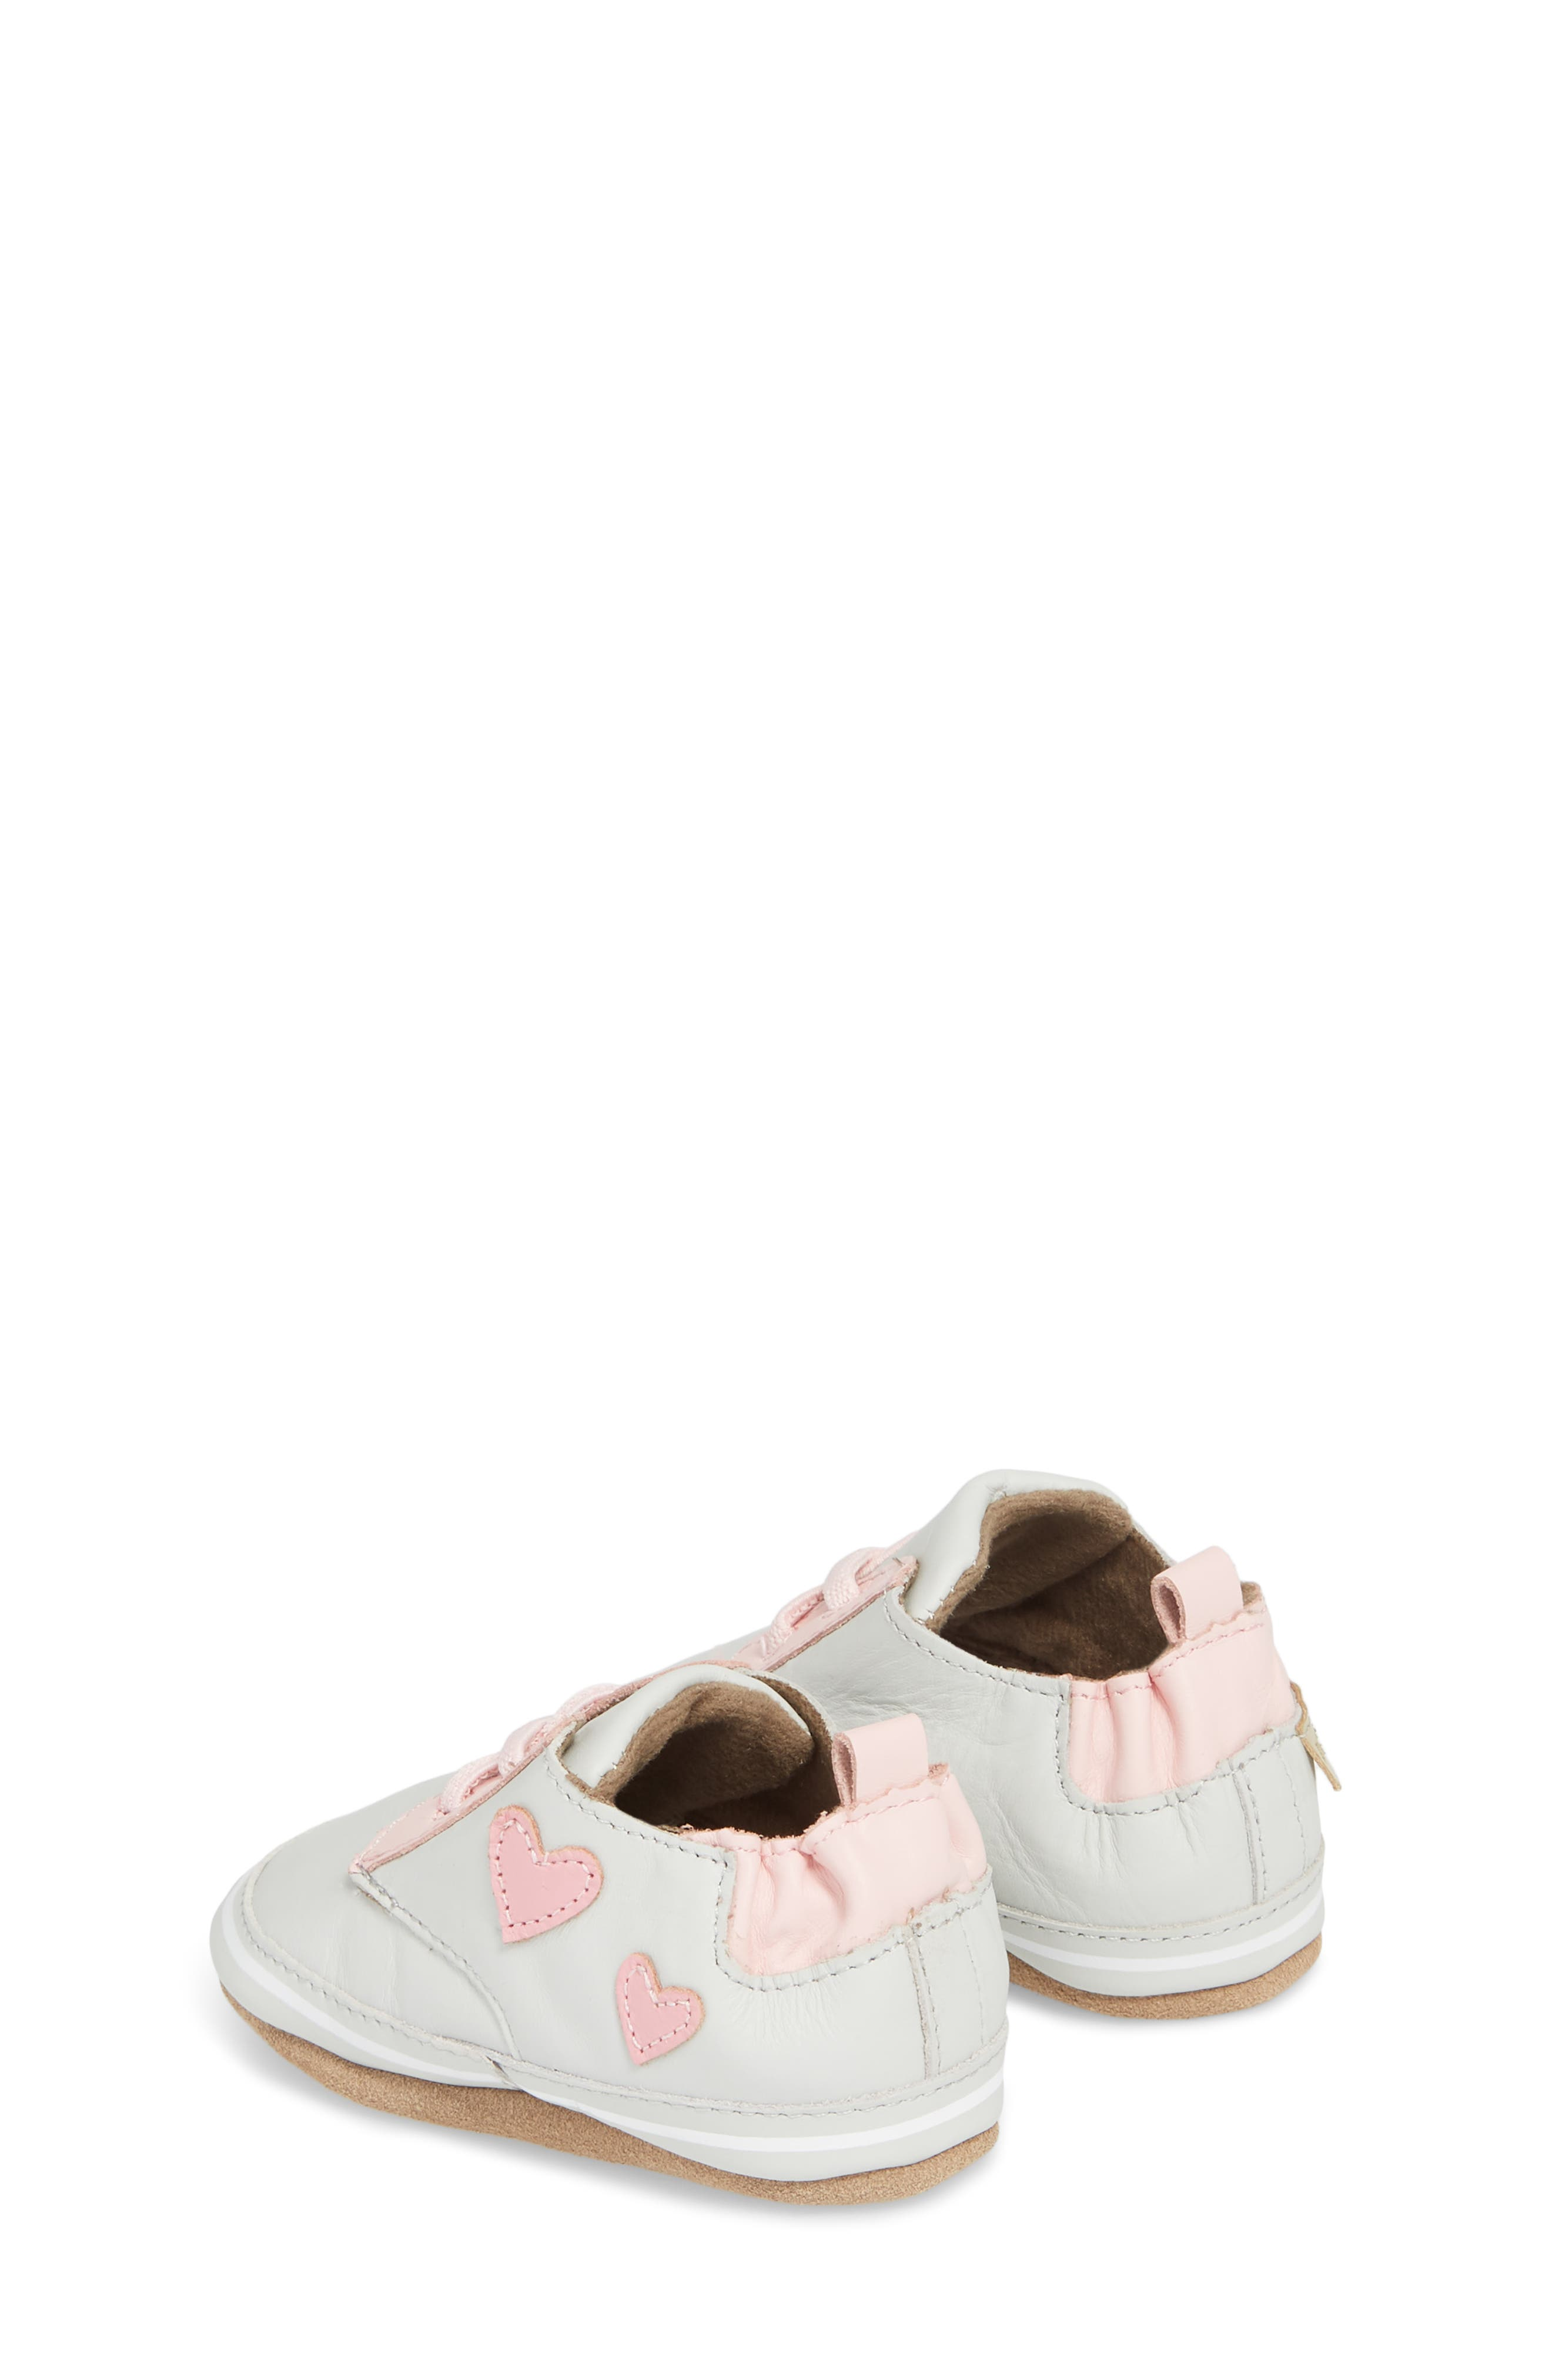 Heartbreaker Slip-On Crib Sneaker,                             Alternate thumbnail 2, color,                             055